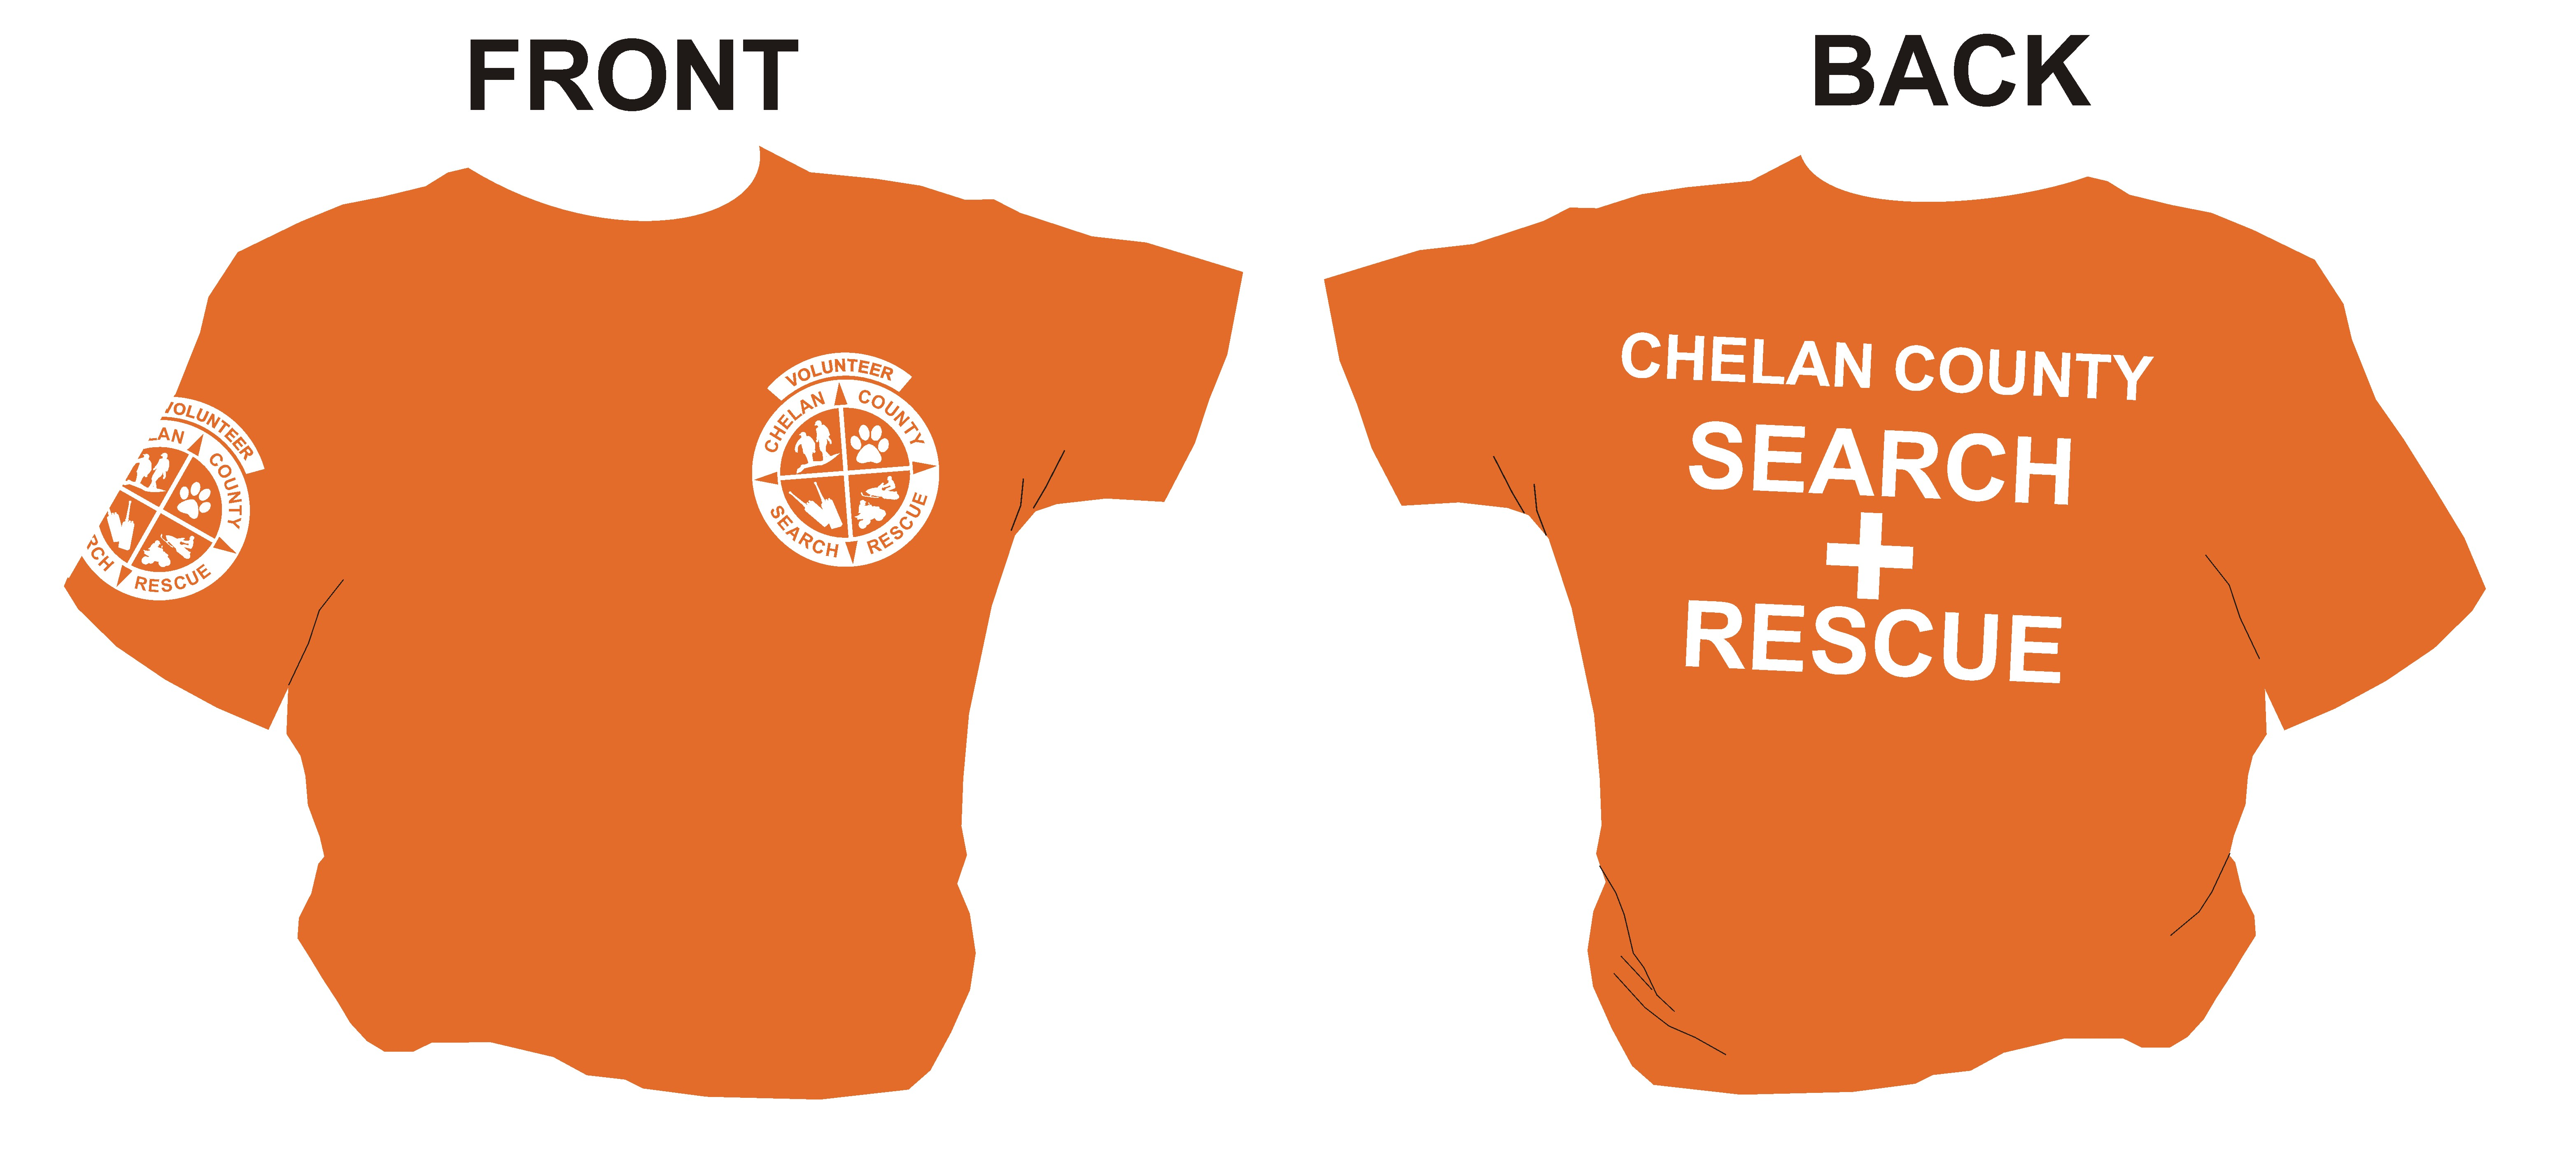 Tshirt example-FRONT & BACK